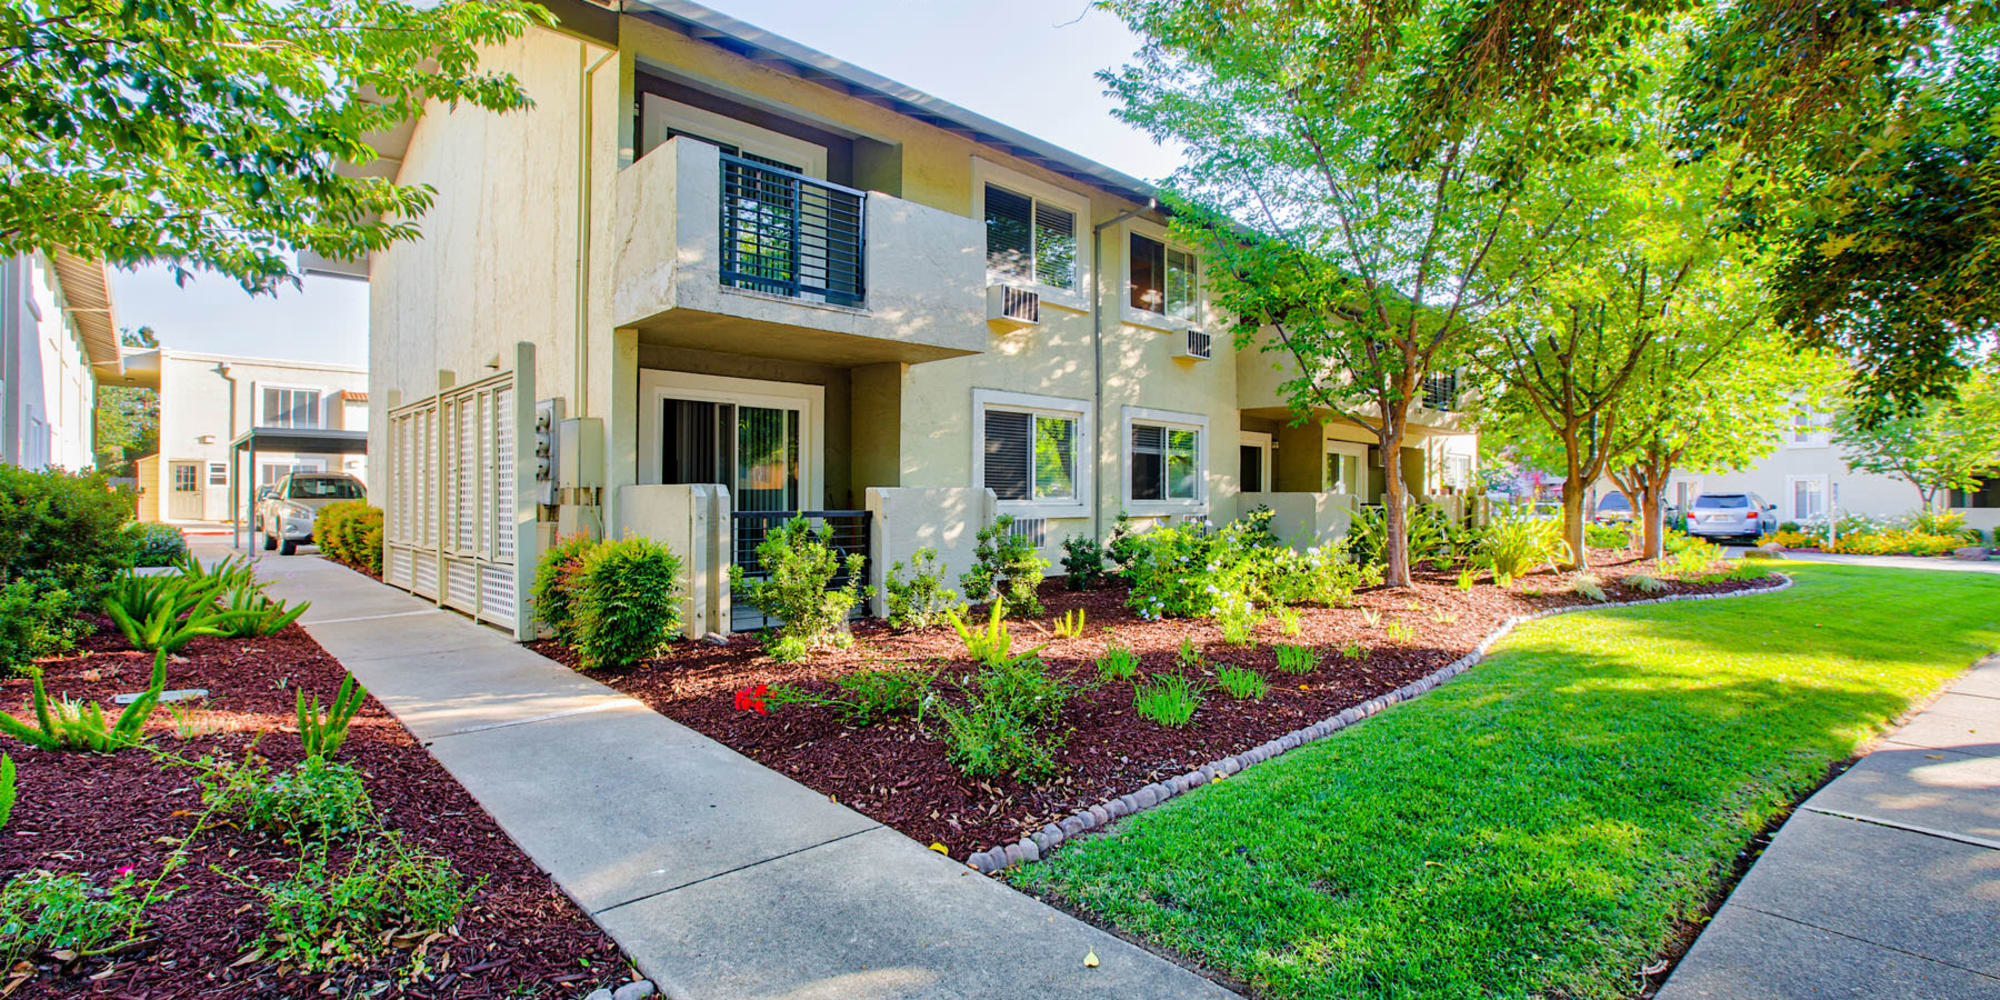 Green grass and mature trees outside resident buildings at Pleasanton Place Apartment Homes in Pleasanton, California